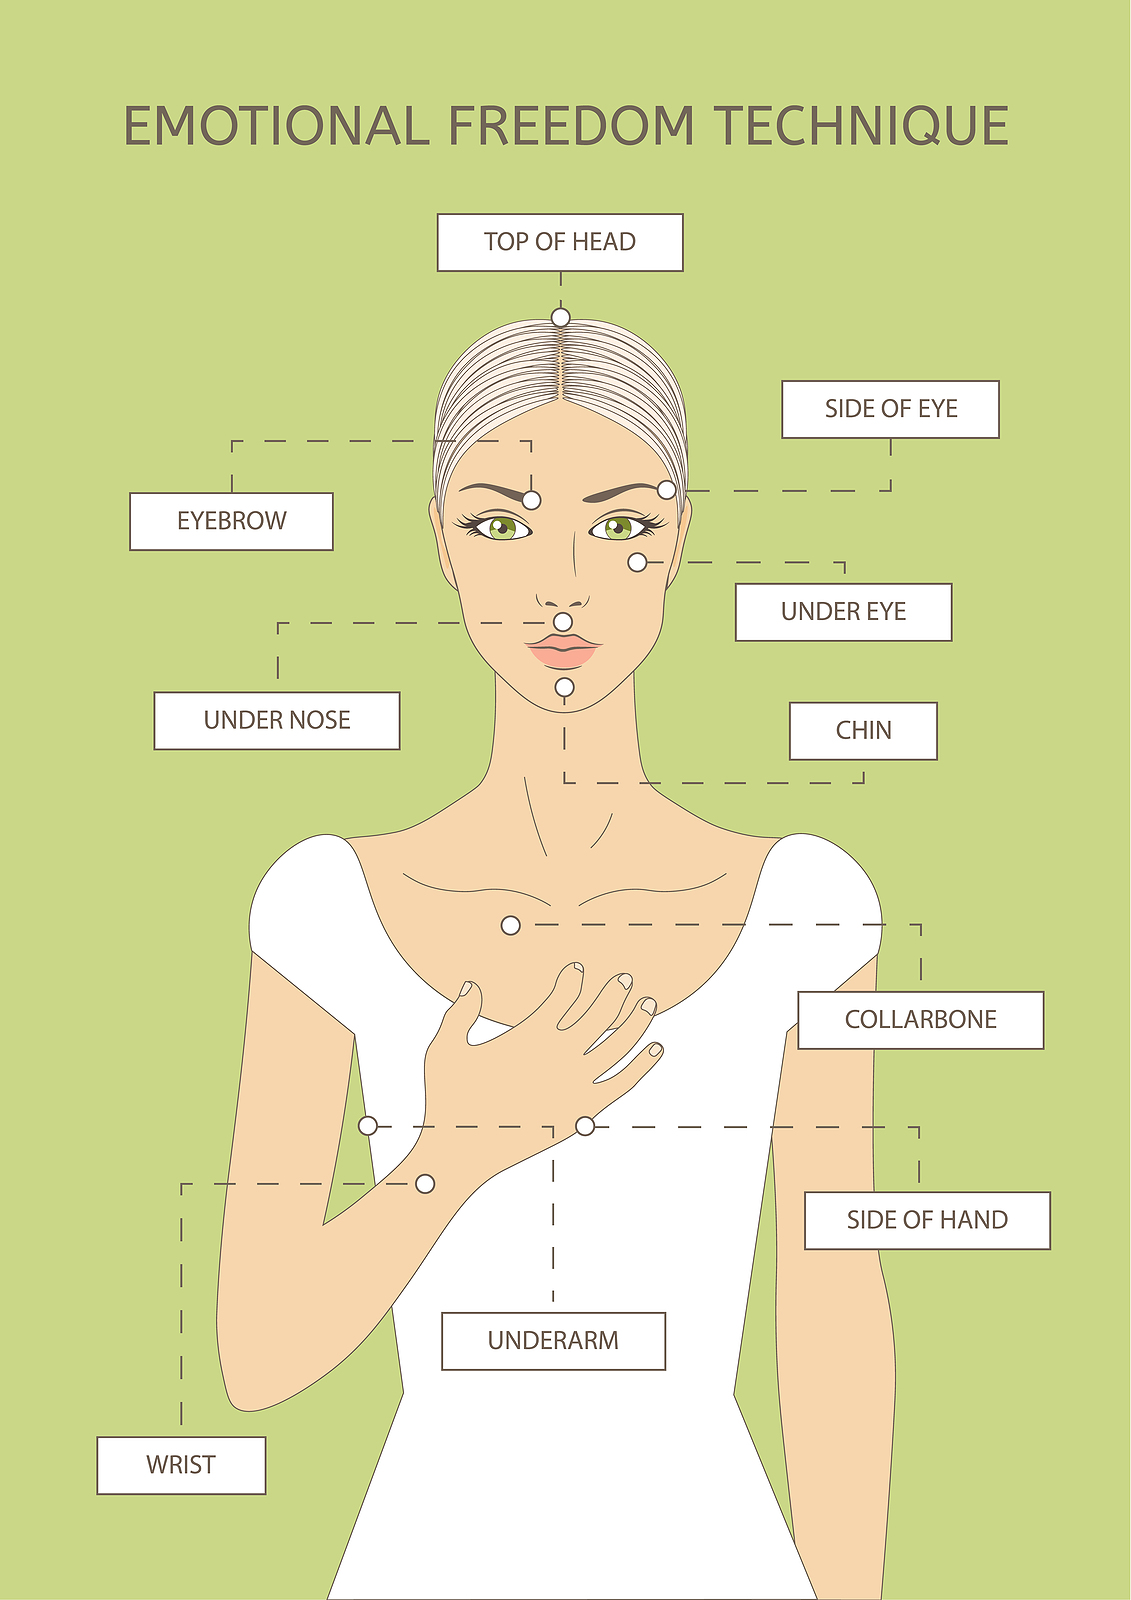 A diagram of tapping points for EFT showing the various places tapping is effective on the body. These meridian points help process anxiety, codependency, trauma, stress and more with a trained therapist in Miramar, FL. Get online therapy for women in Florida here!